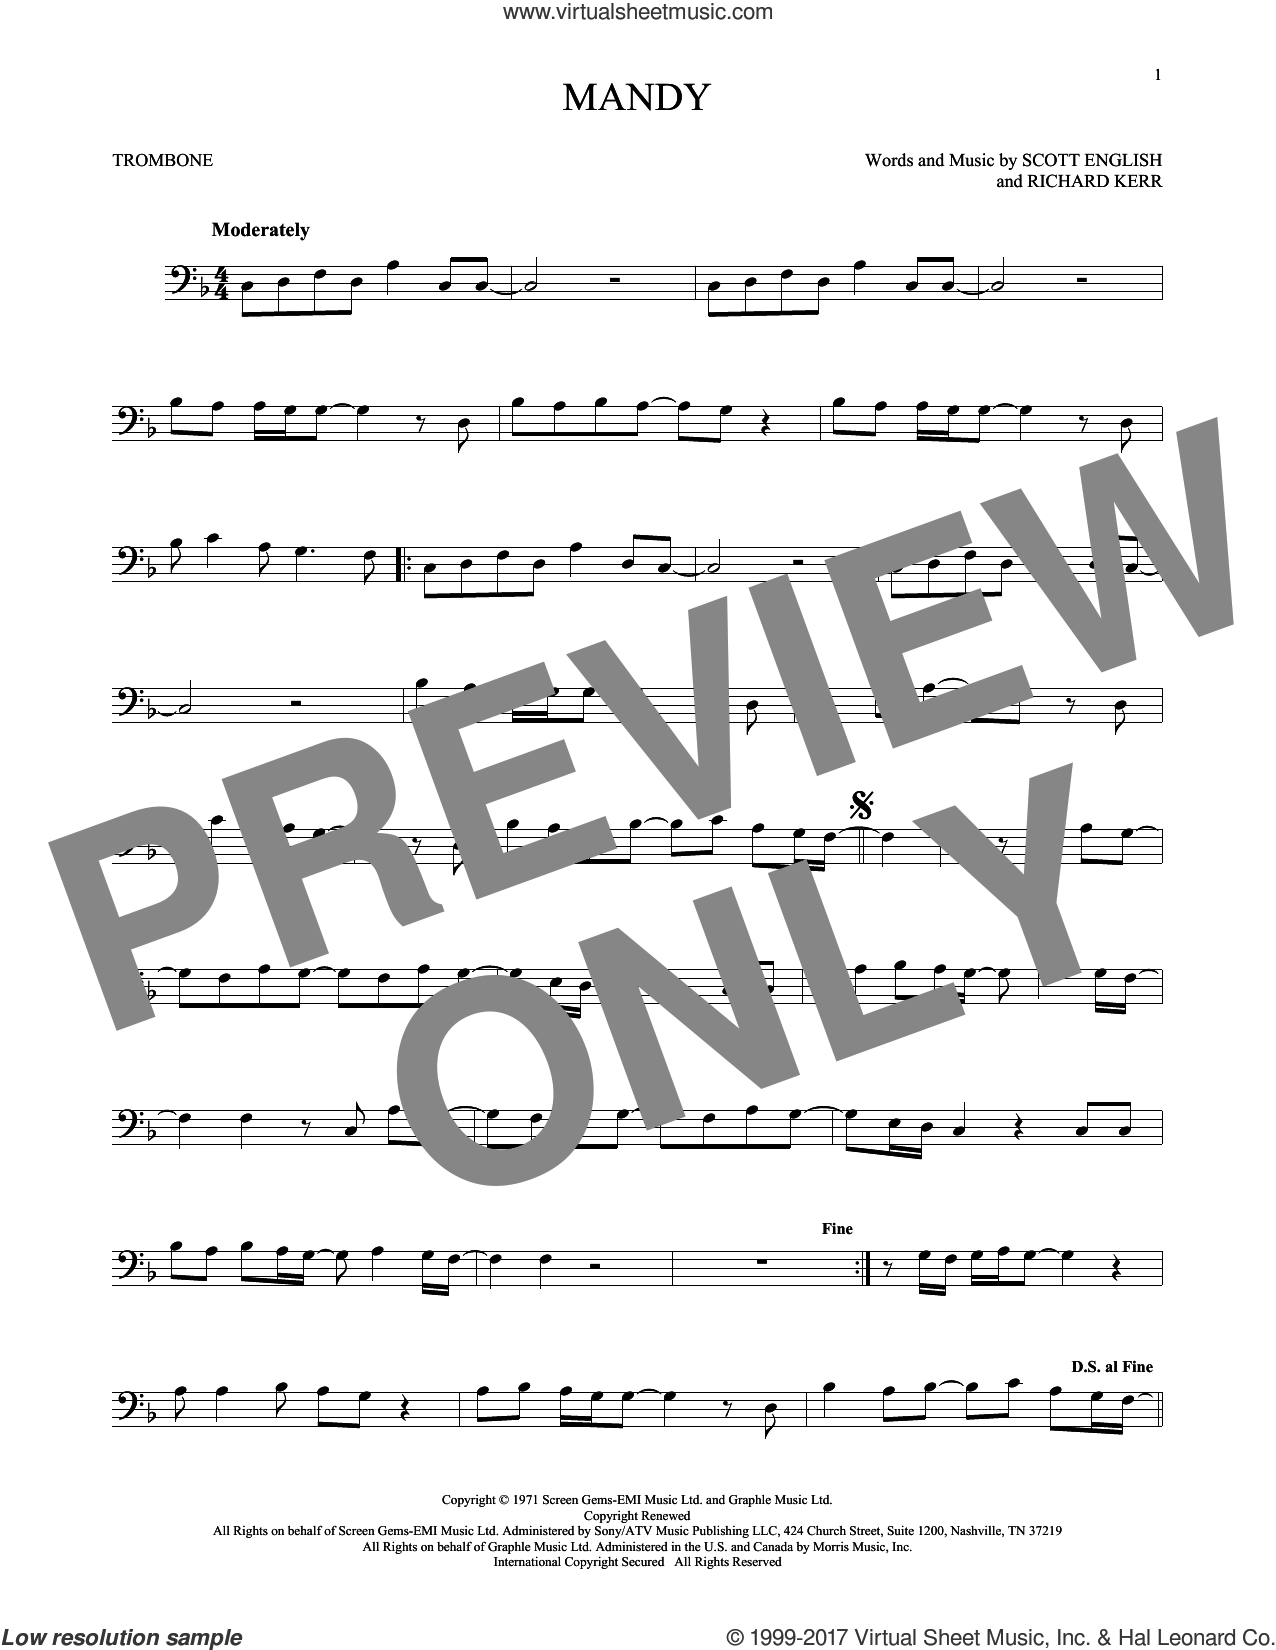 Mandy sheet music for trombone solo by Barry Manilow, Richard Kerr and Scott English, intermediate skill level